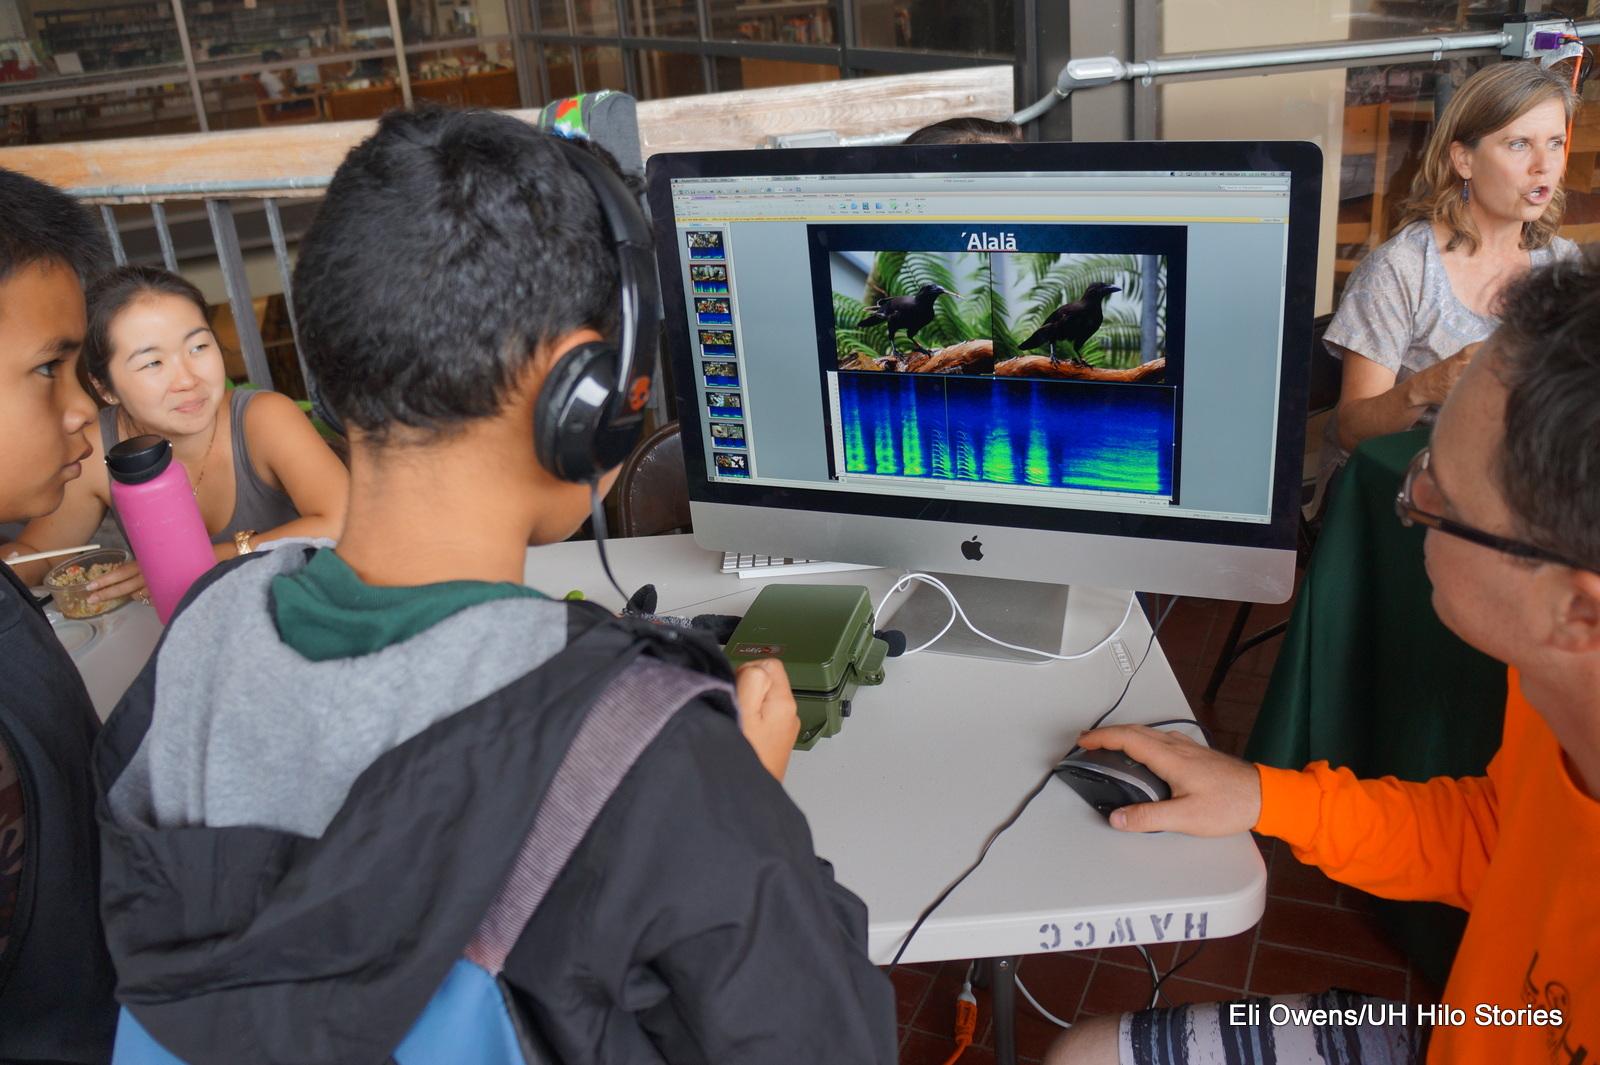 PHOTOS: 2018 UH Hilo Conservation Career Day, displays inspire island schoolchildren to pursue careers in conservation